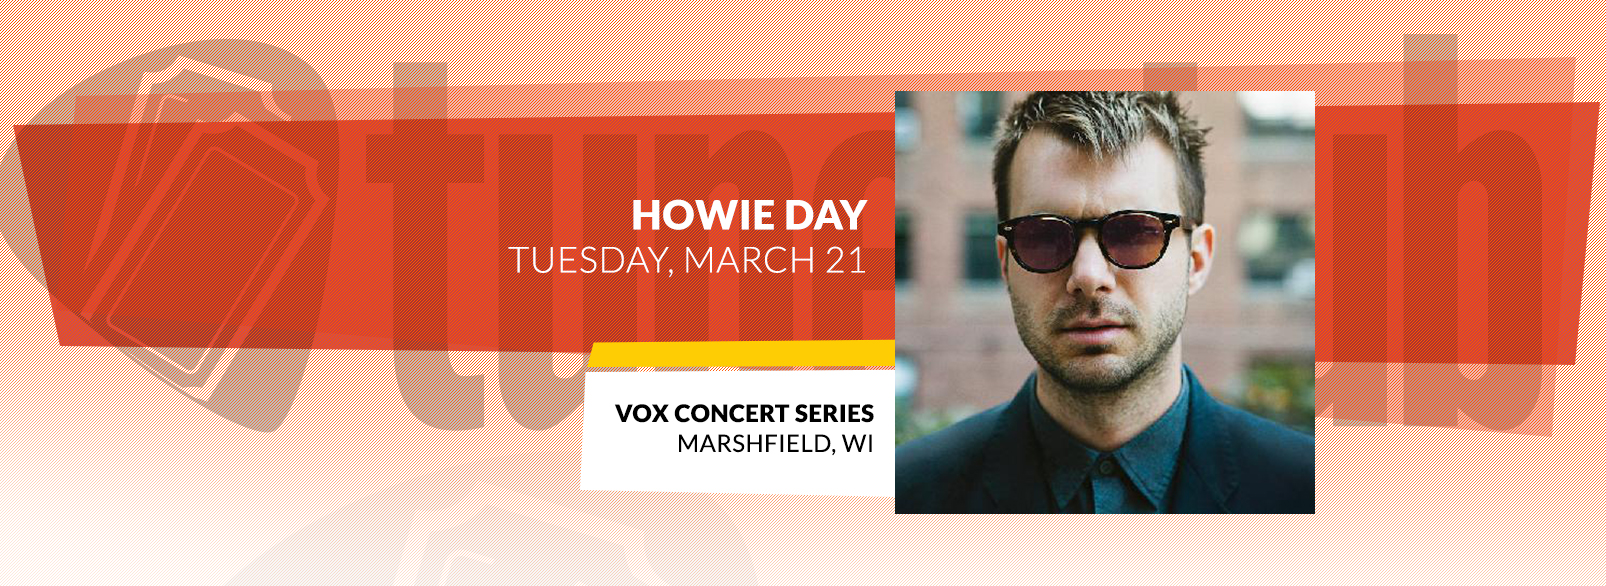 Howie Day @ Vox Concert Series